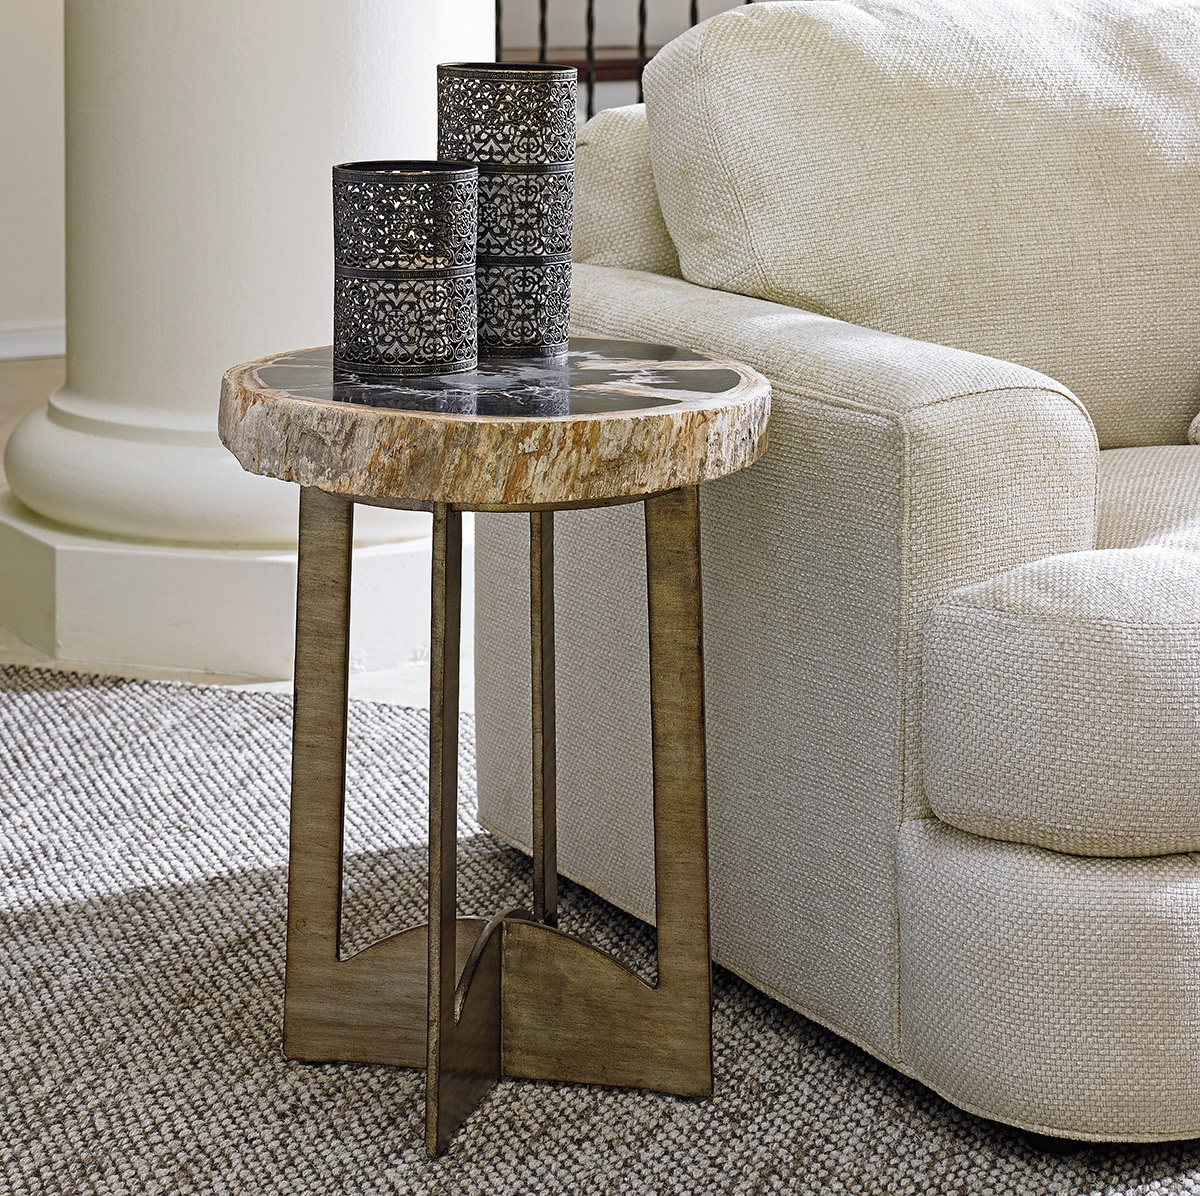 small table tables end side accent limited production design stock petrified wood fossil hand forged base burnished silver leaf finish dia inches partner with adjustable legs